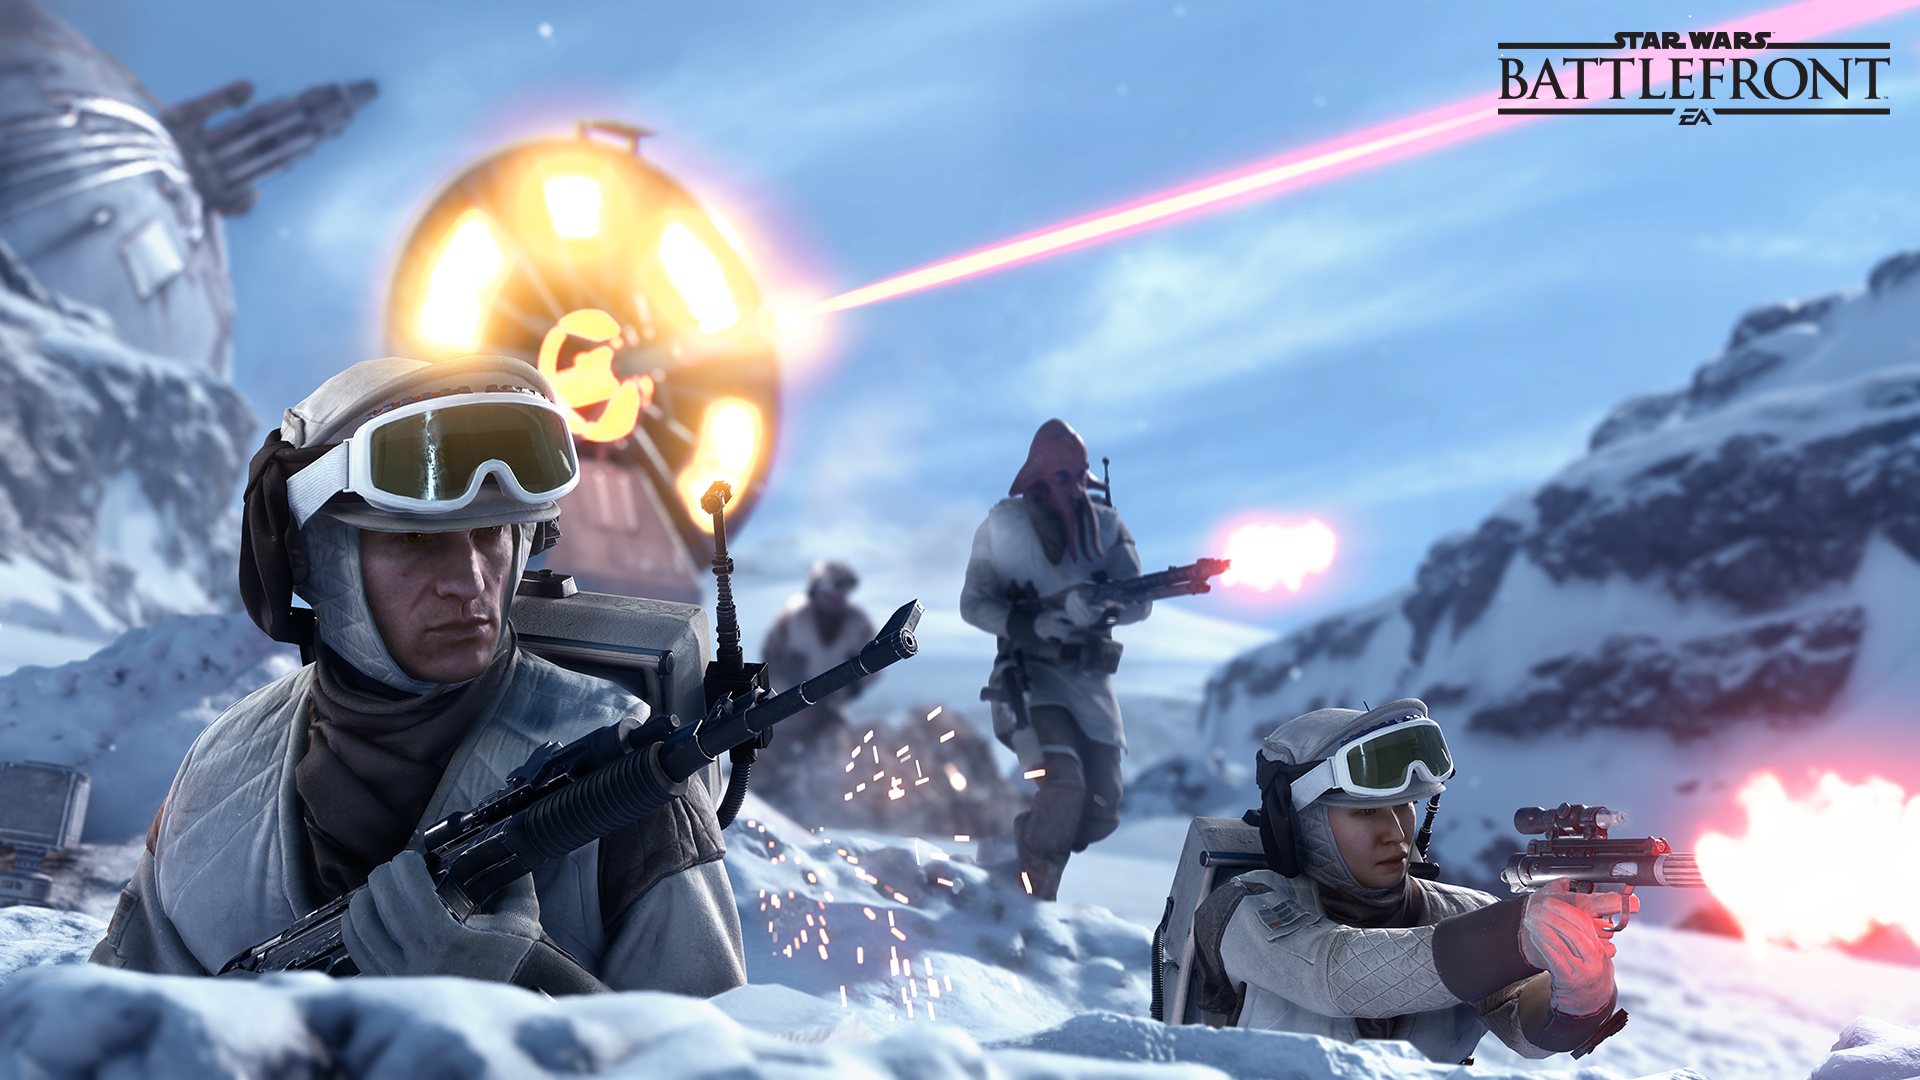 Star Wars Battlefront Game Wallpaper 48665 1920x1080px